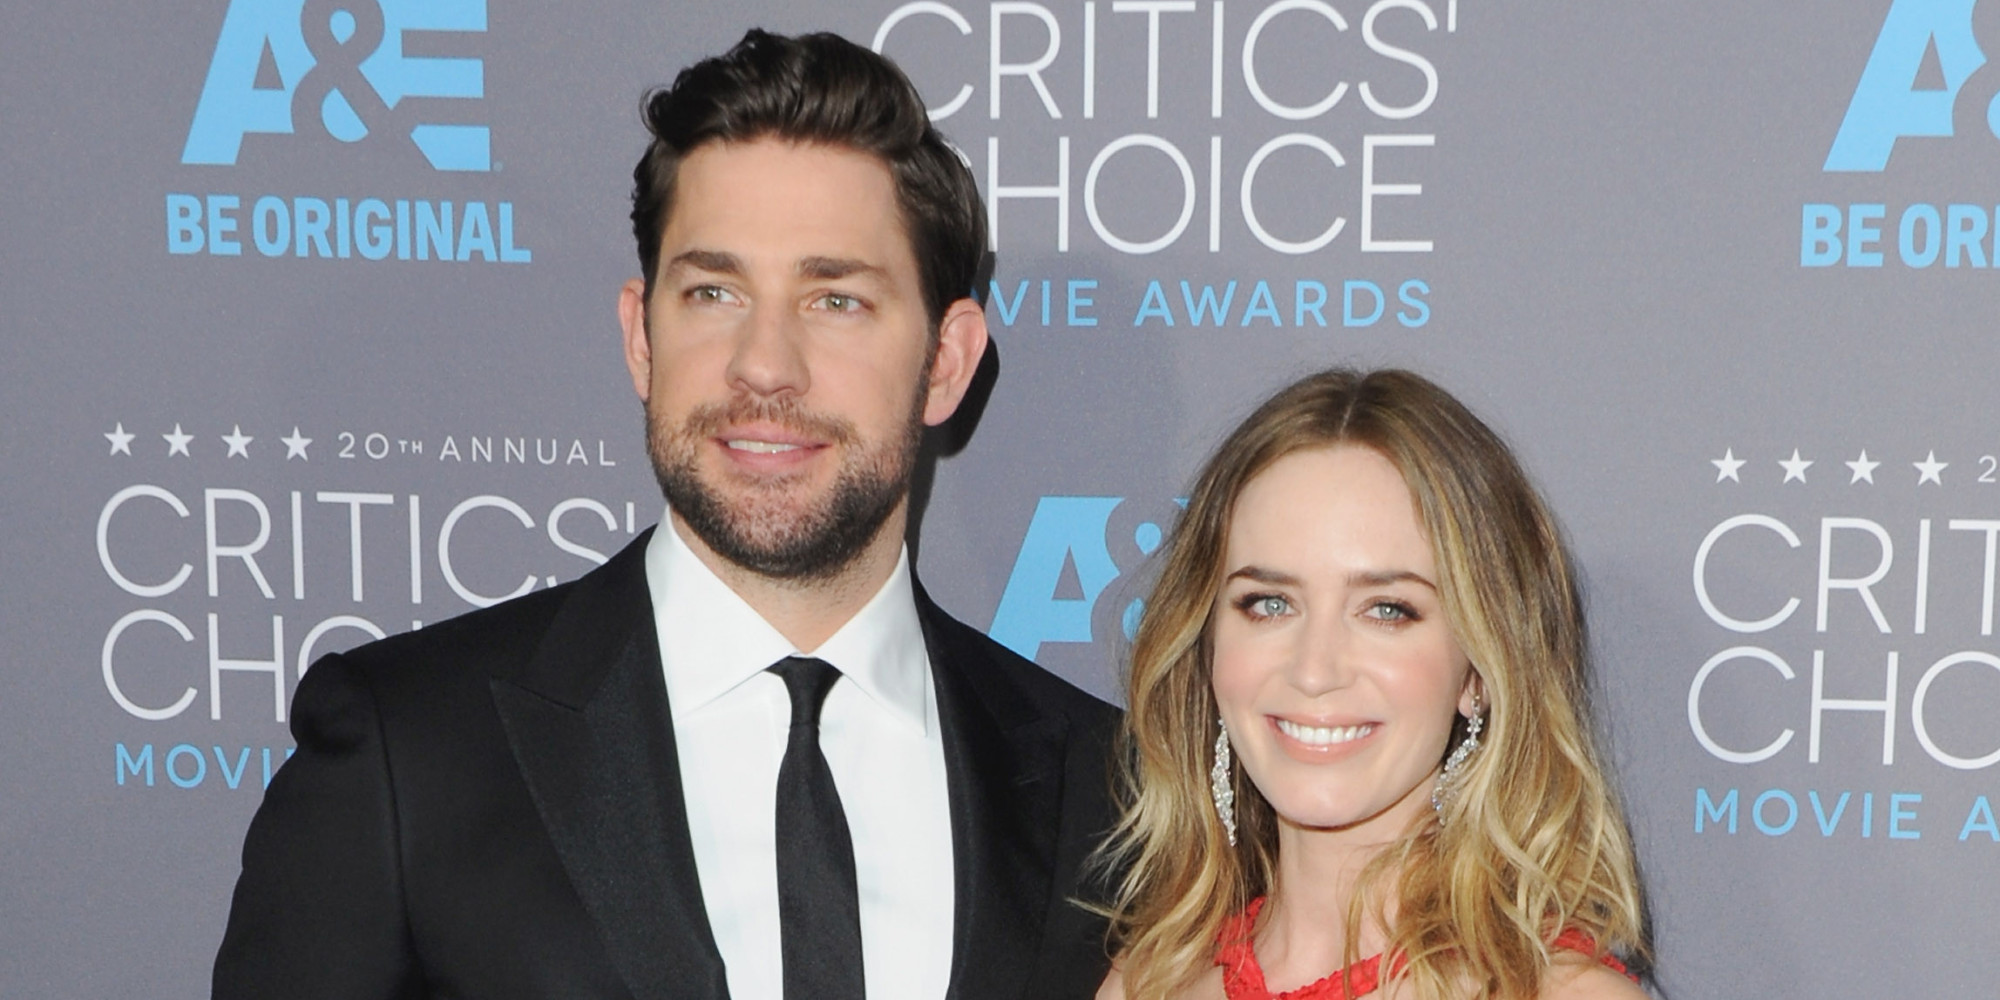 Emily Blunt Pregnant: Actress Is Expecting Her Second